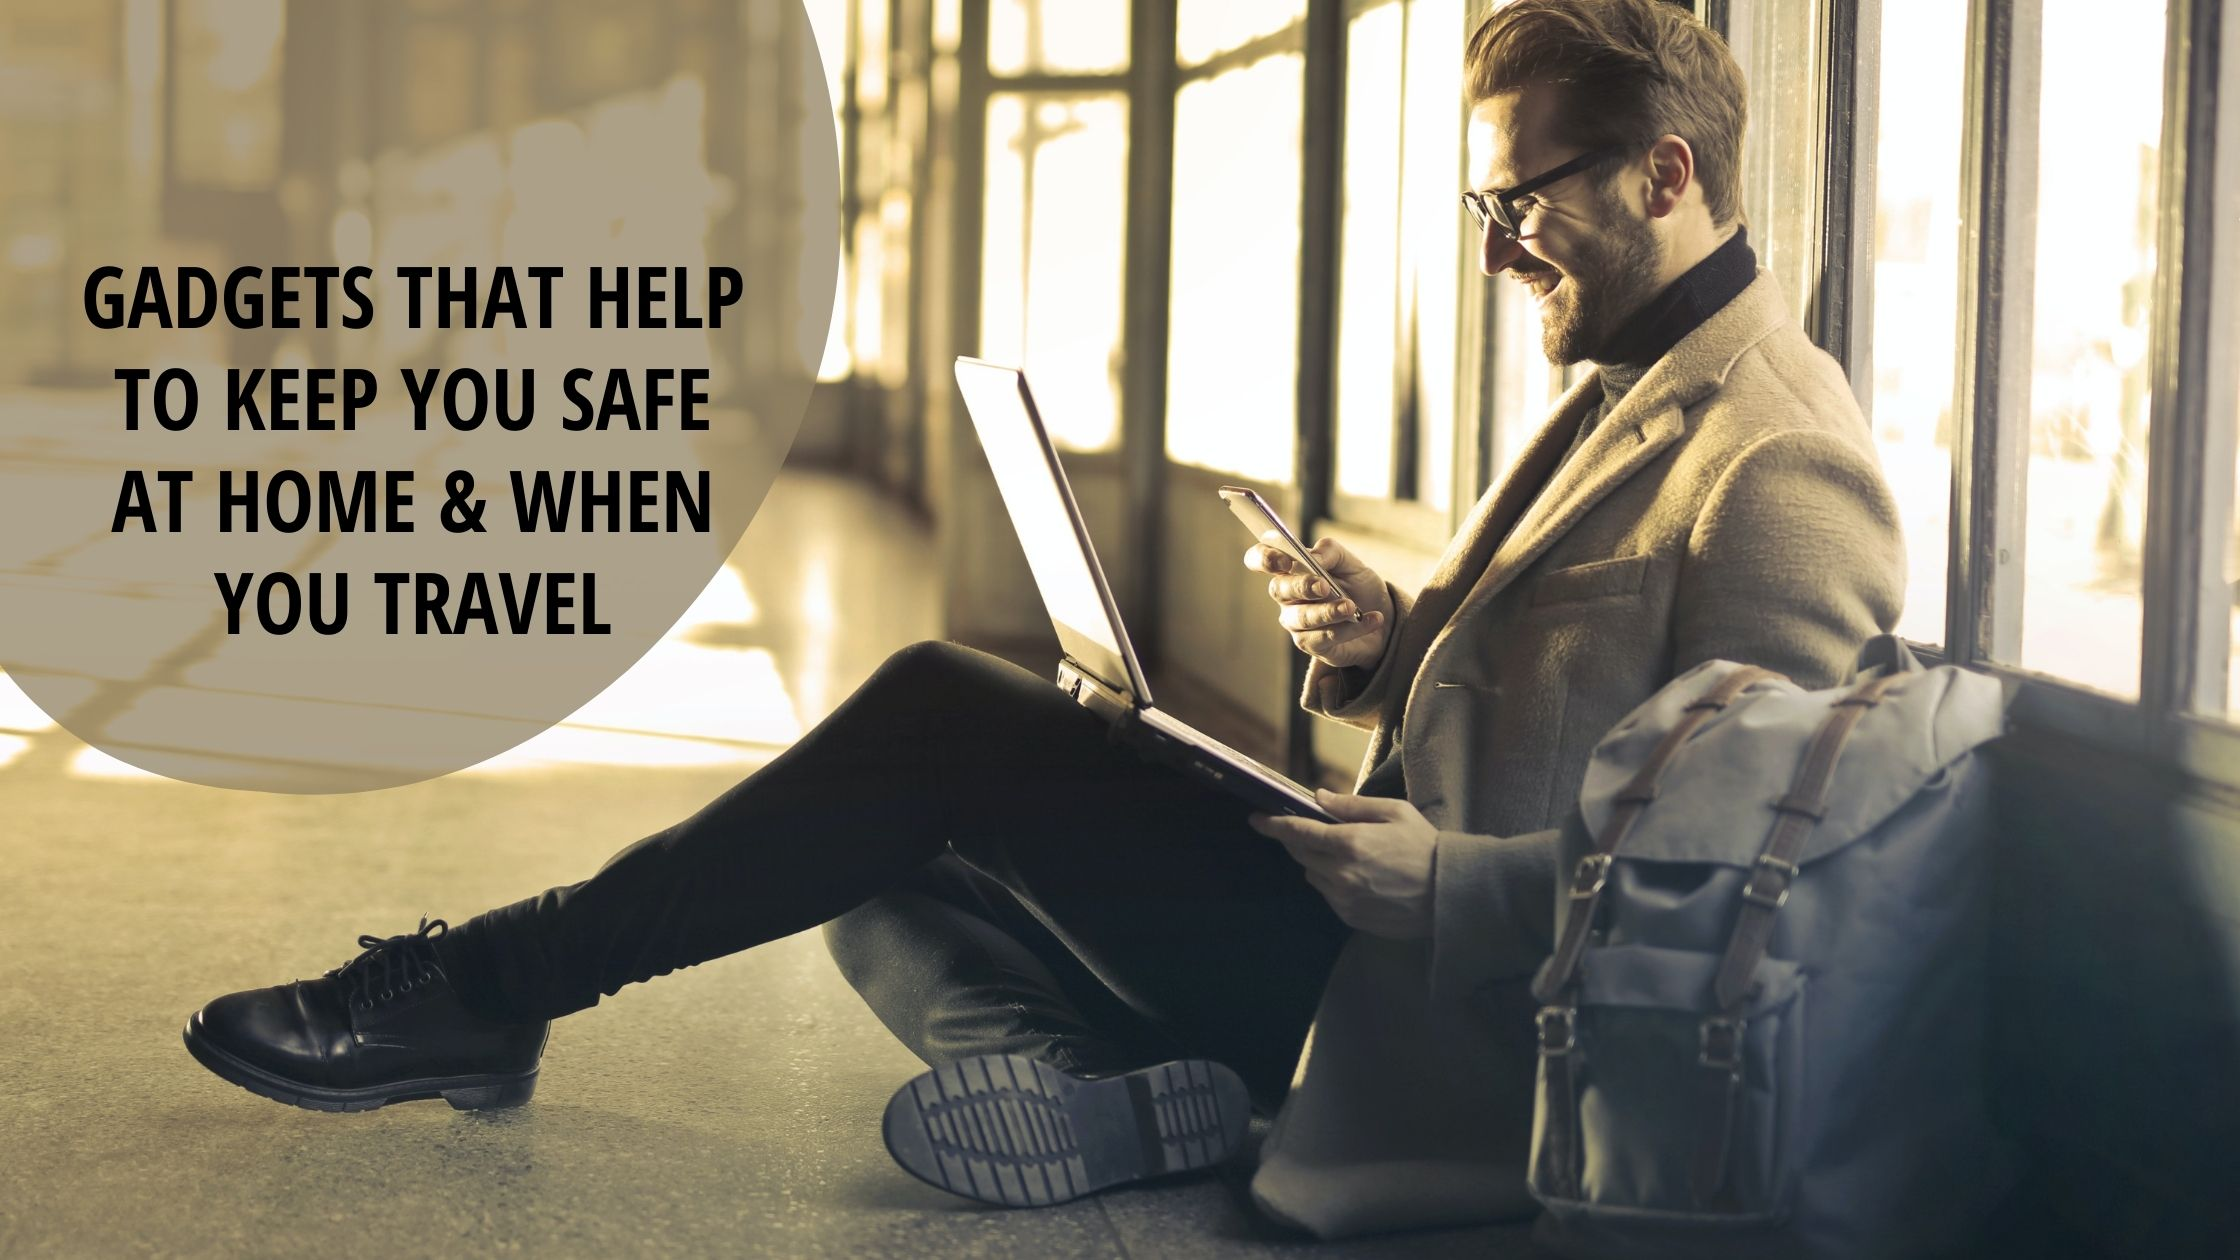 Gadgets That Help to Keep You Safe at Home & When You Travel | Looknwalk